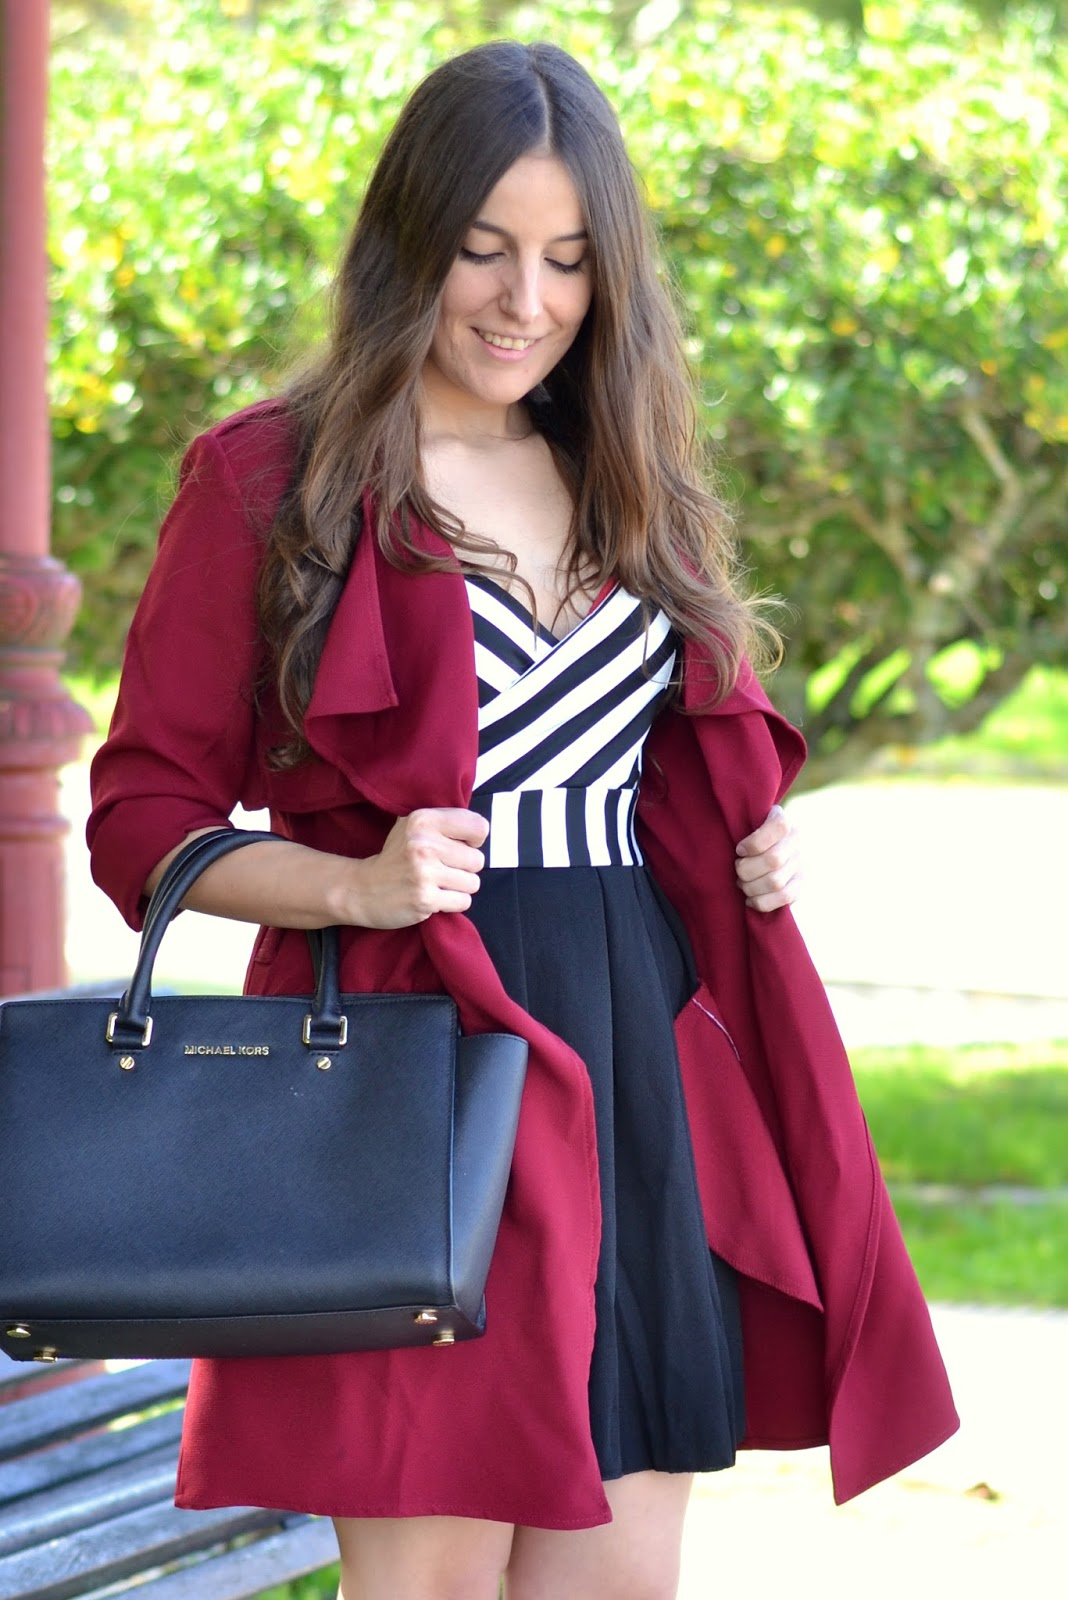 wholesalebuying stripes dress